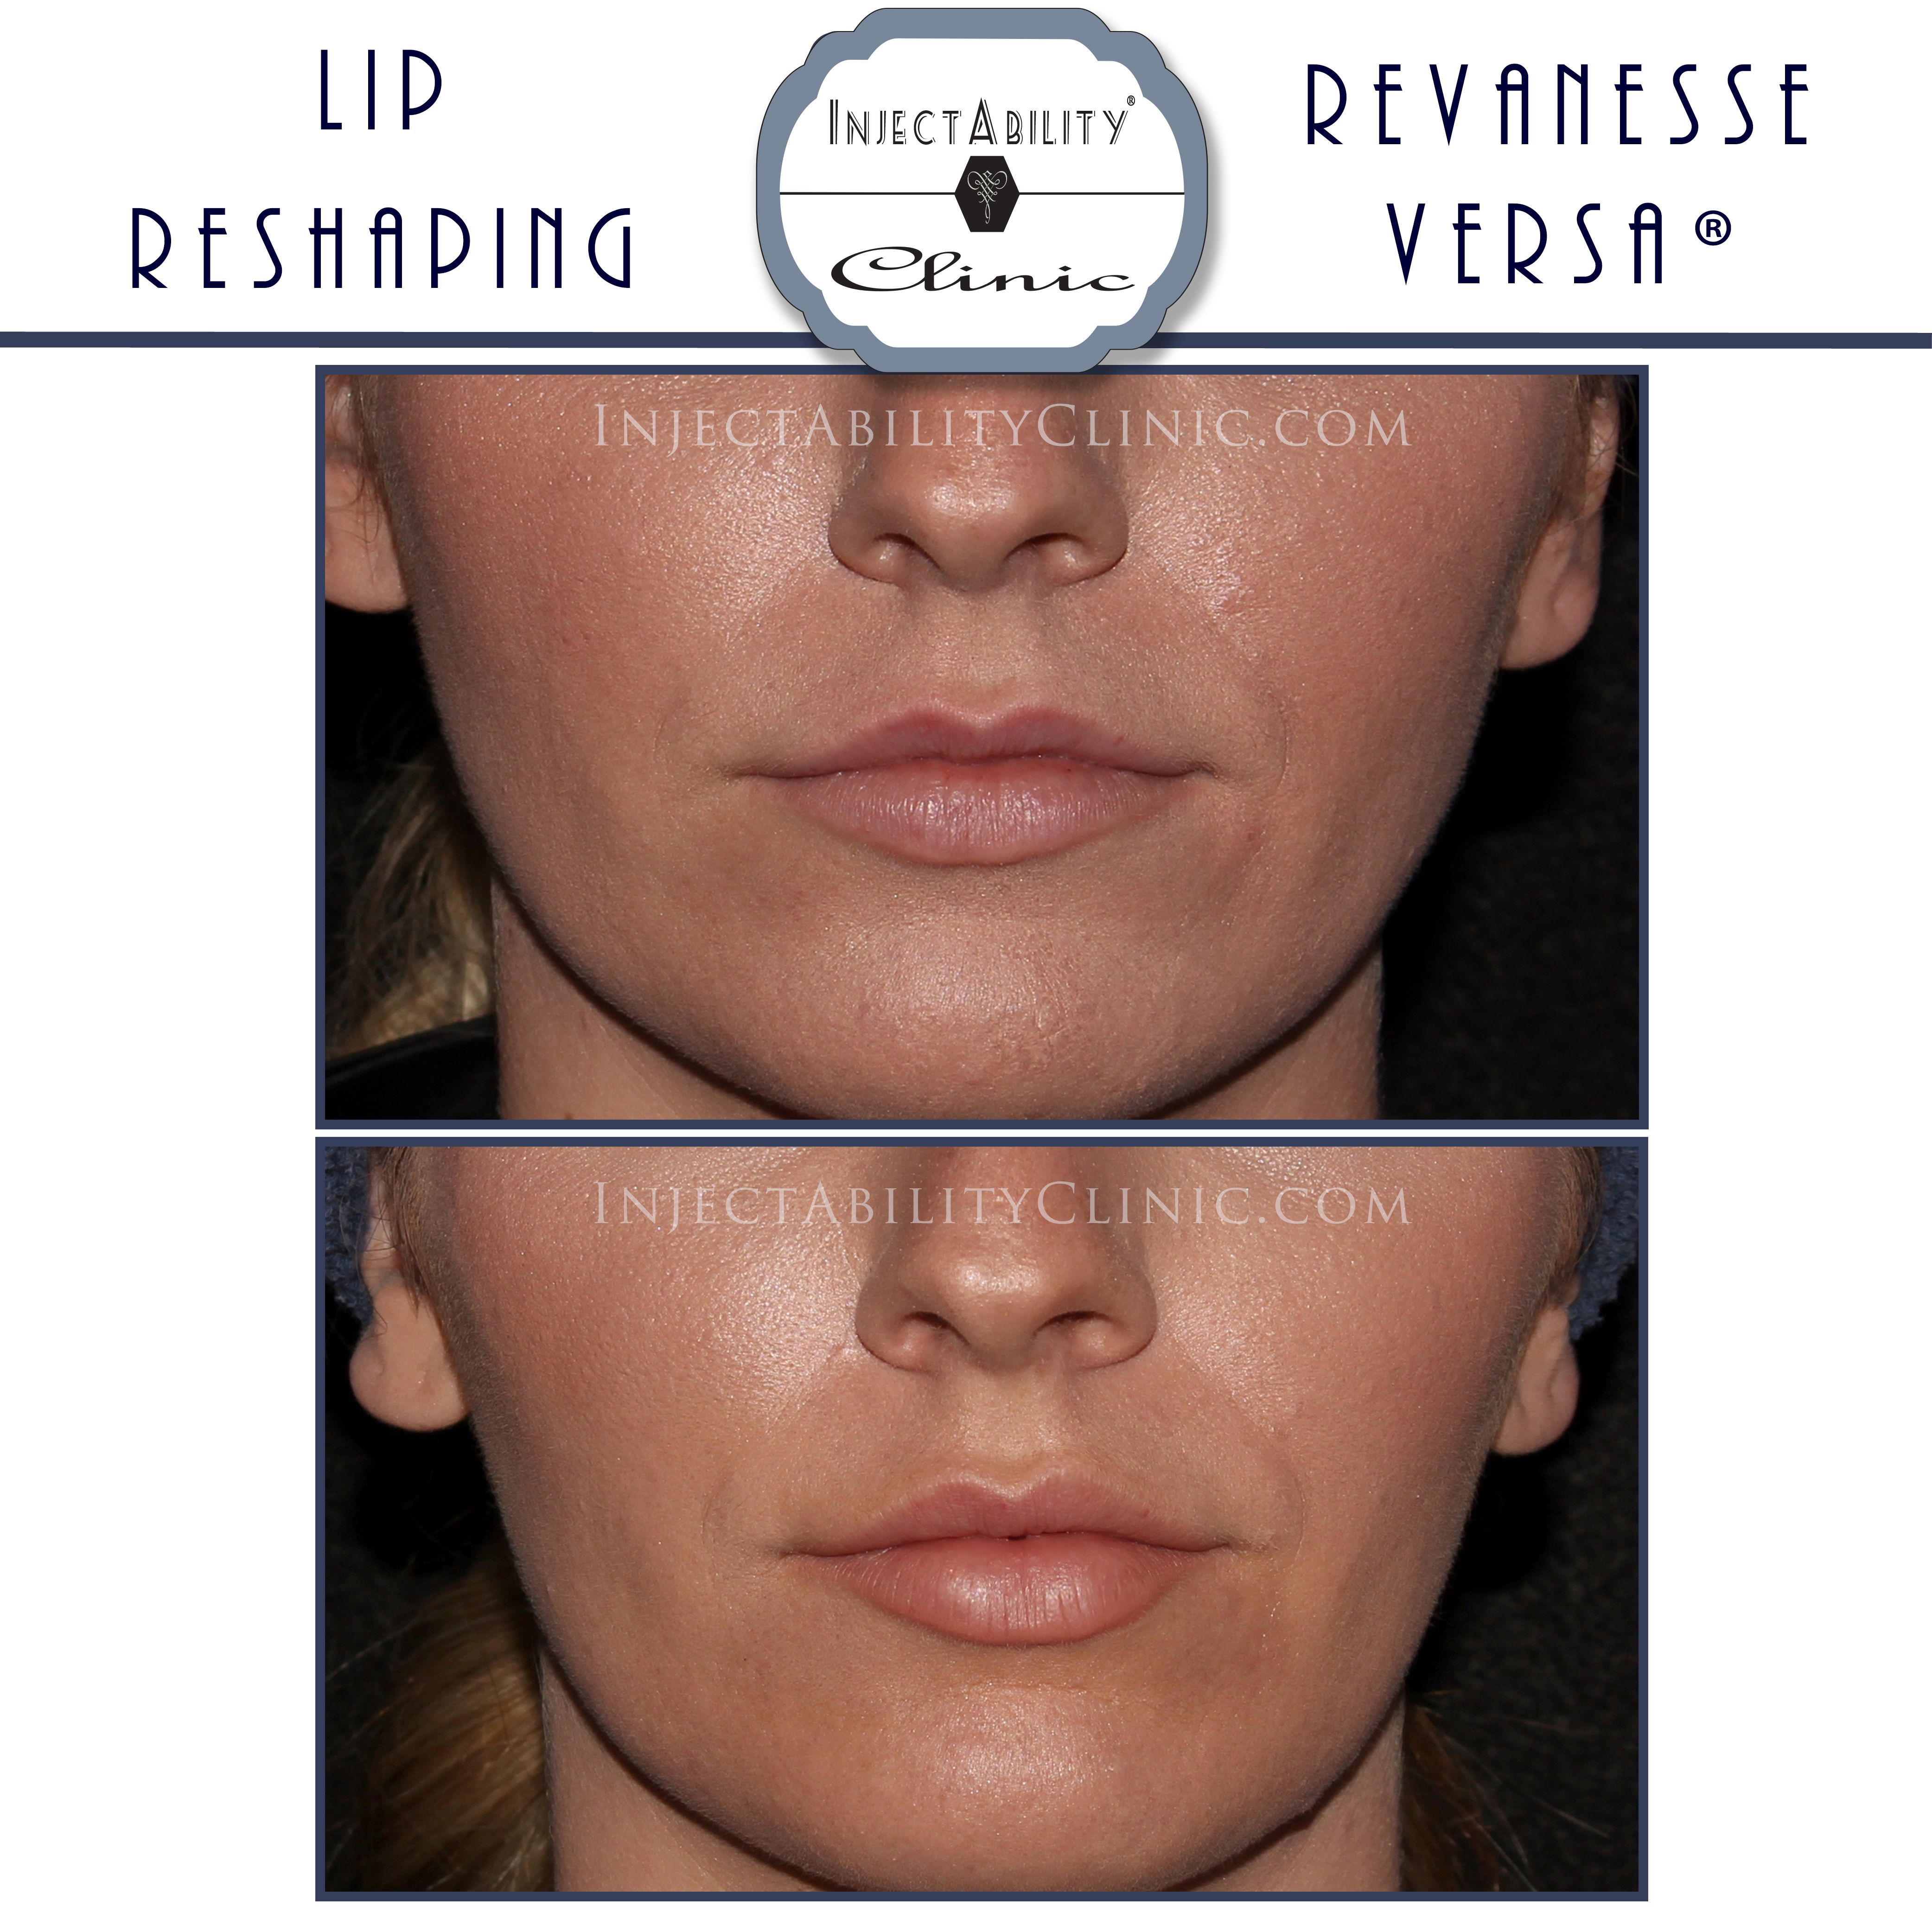 Revanesse versa before and after InjectAbility clinic | Before and